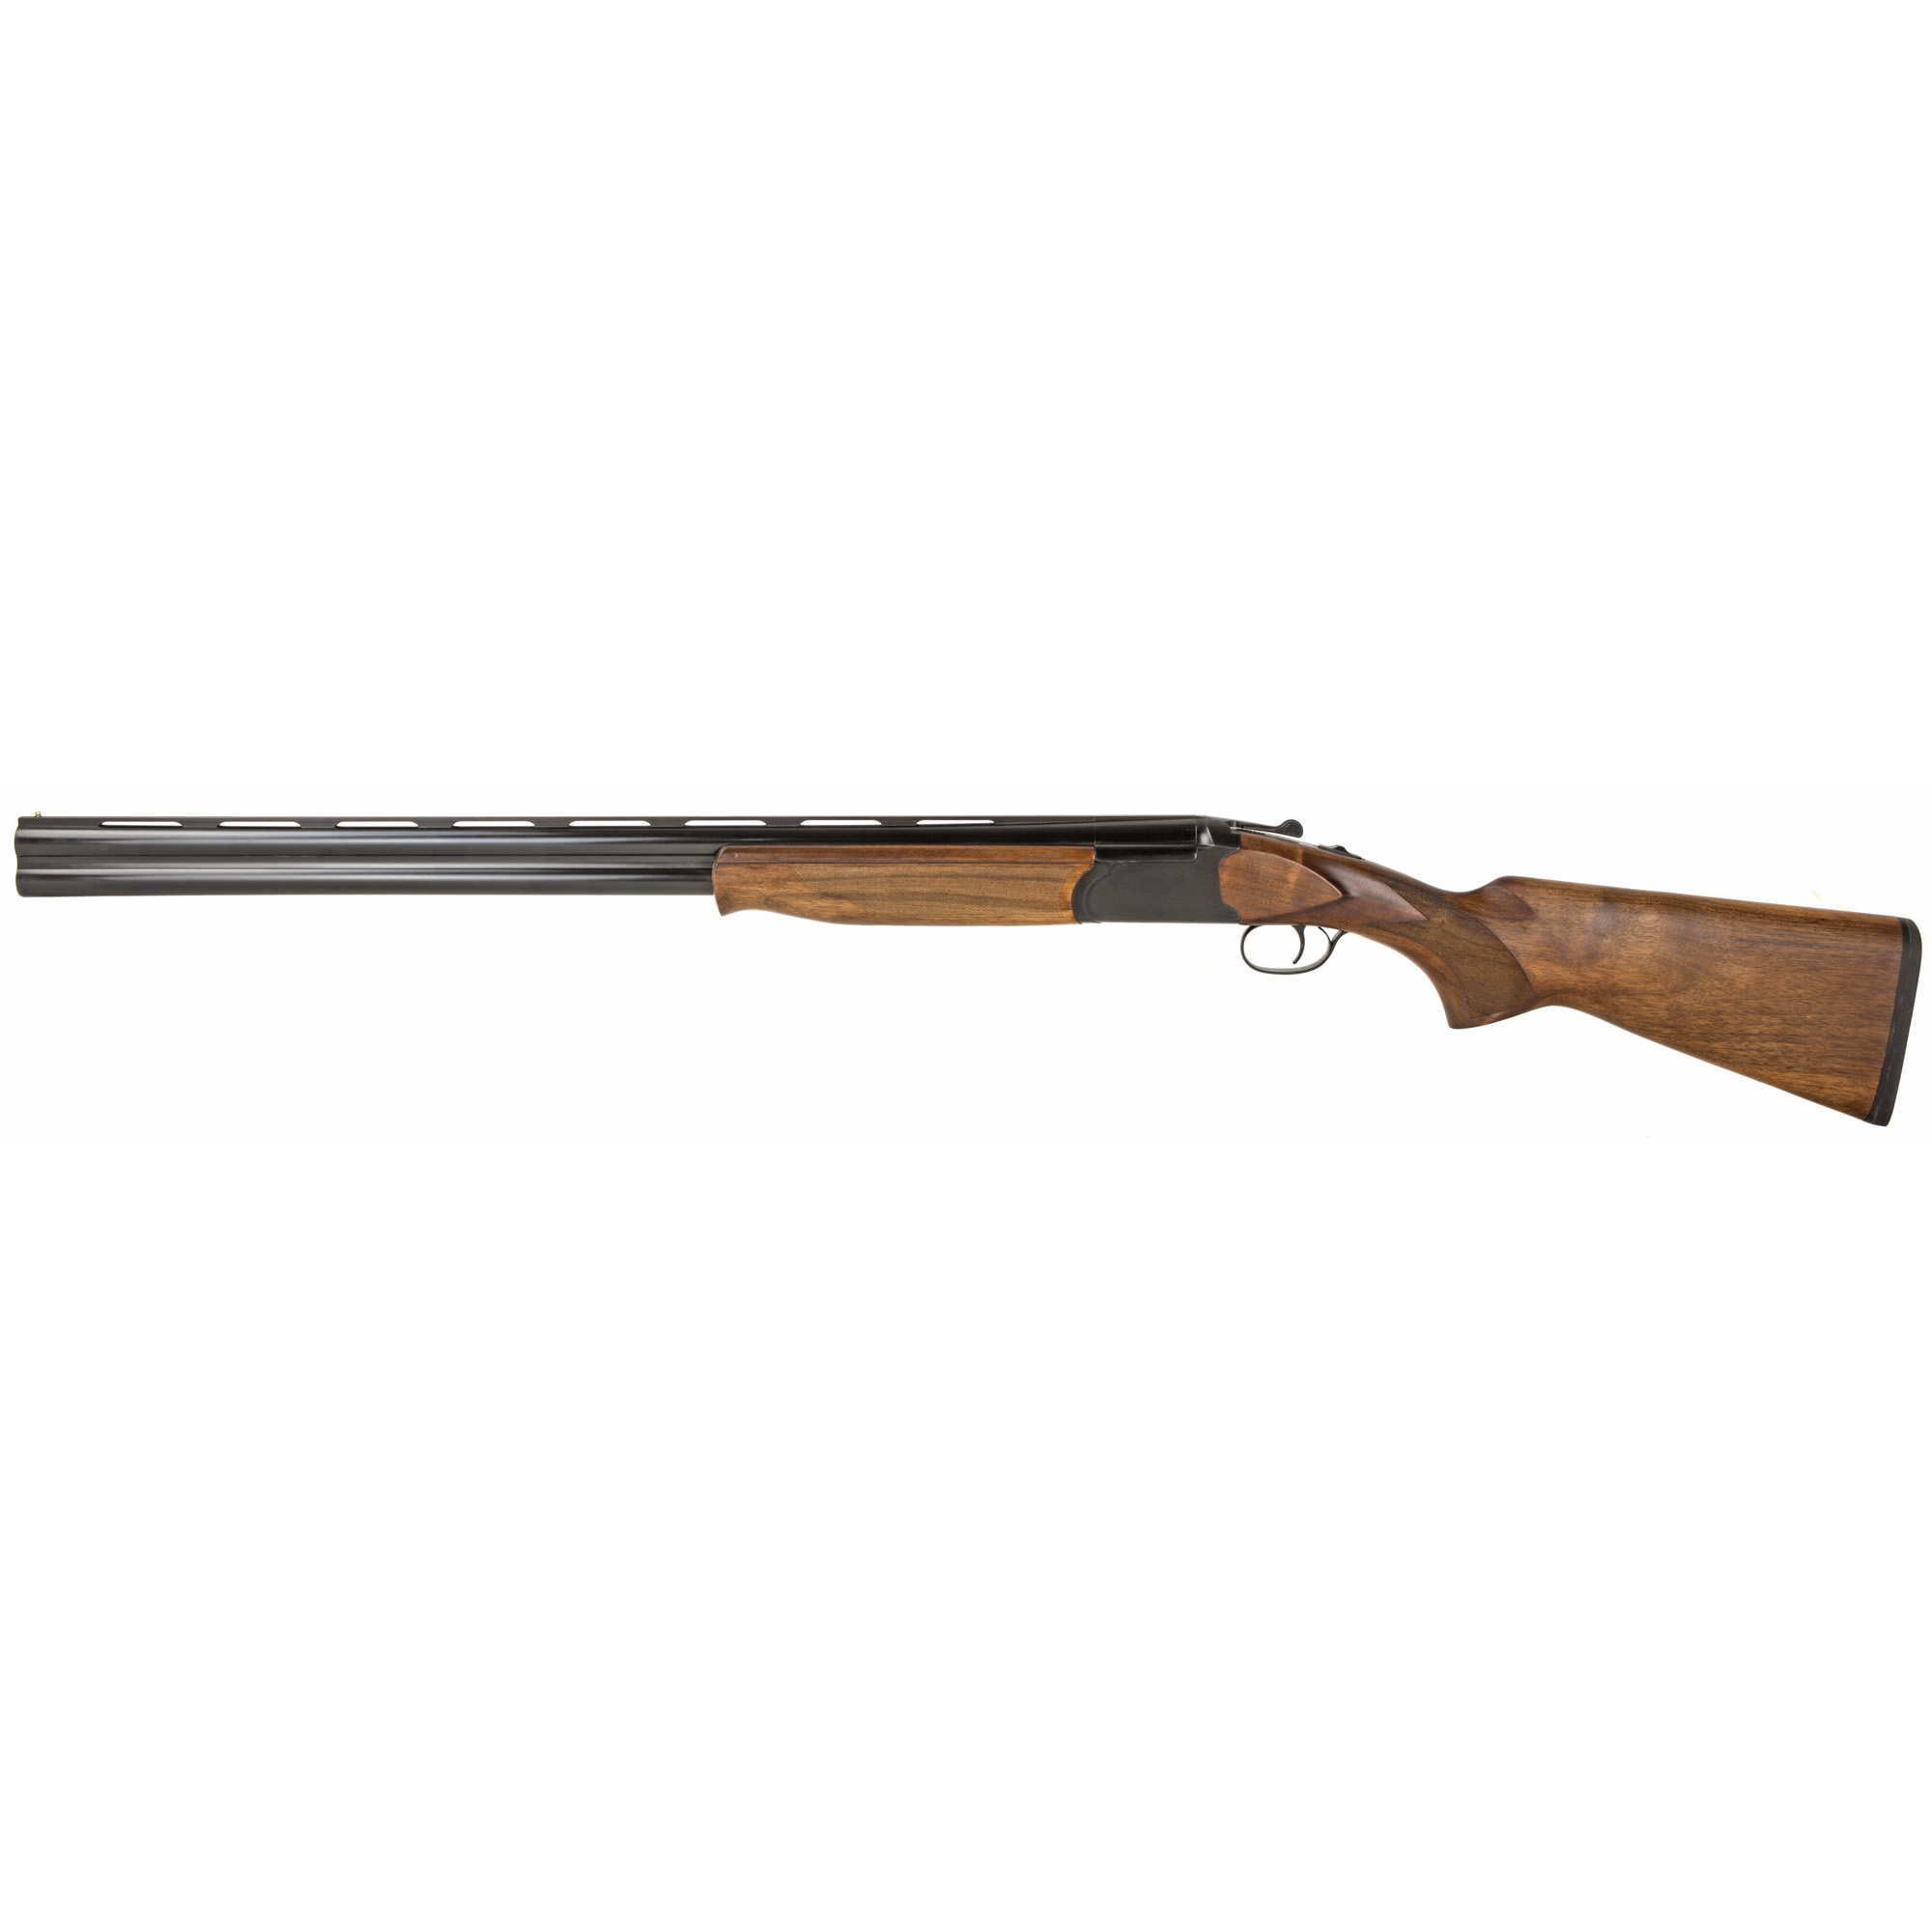 """The MR-100-12 is an over/under"""" 12 gauge shotgun with 28"""" barrels. It features a chamber capable of firing 2-3/4 or 3"""" shells. The classic look of this shotgun is enhanced by the blued finish and walnut stock."""